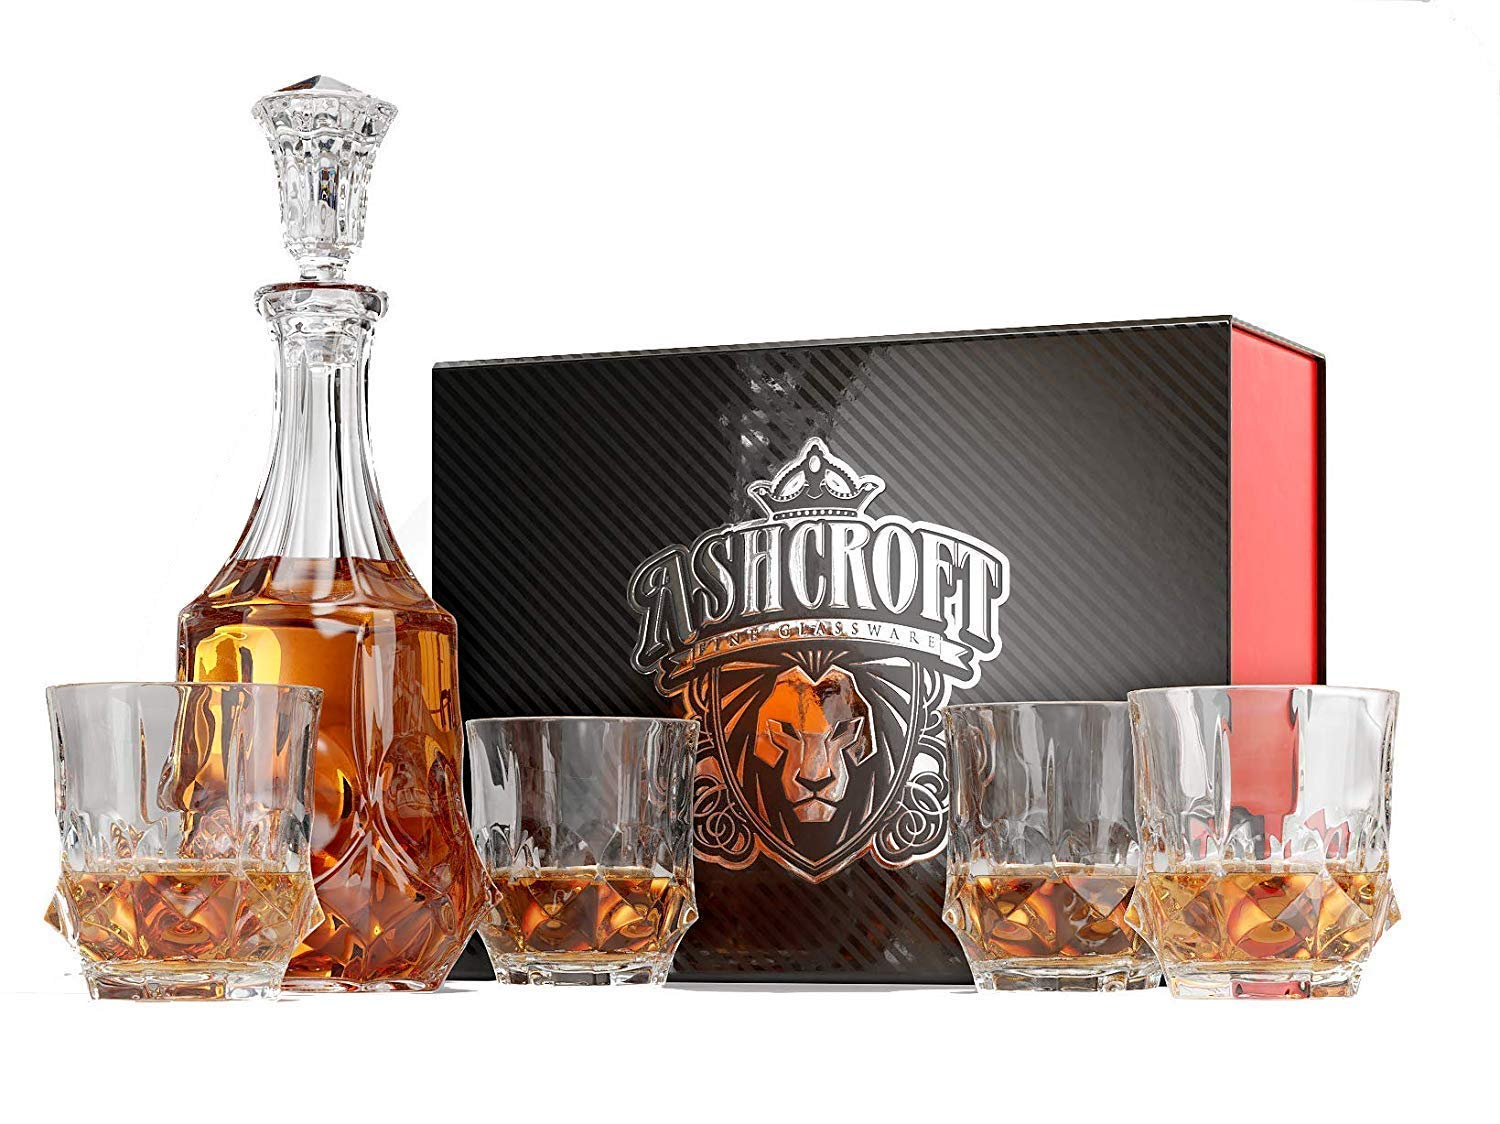 Ashcroft Imperial Whiskey Decanter Set - Lead Free Crystal Glasses for Scotch, Rum, Old Fashioned 5 Piece by Ashcroft Fine Glassware (Image #1)